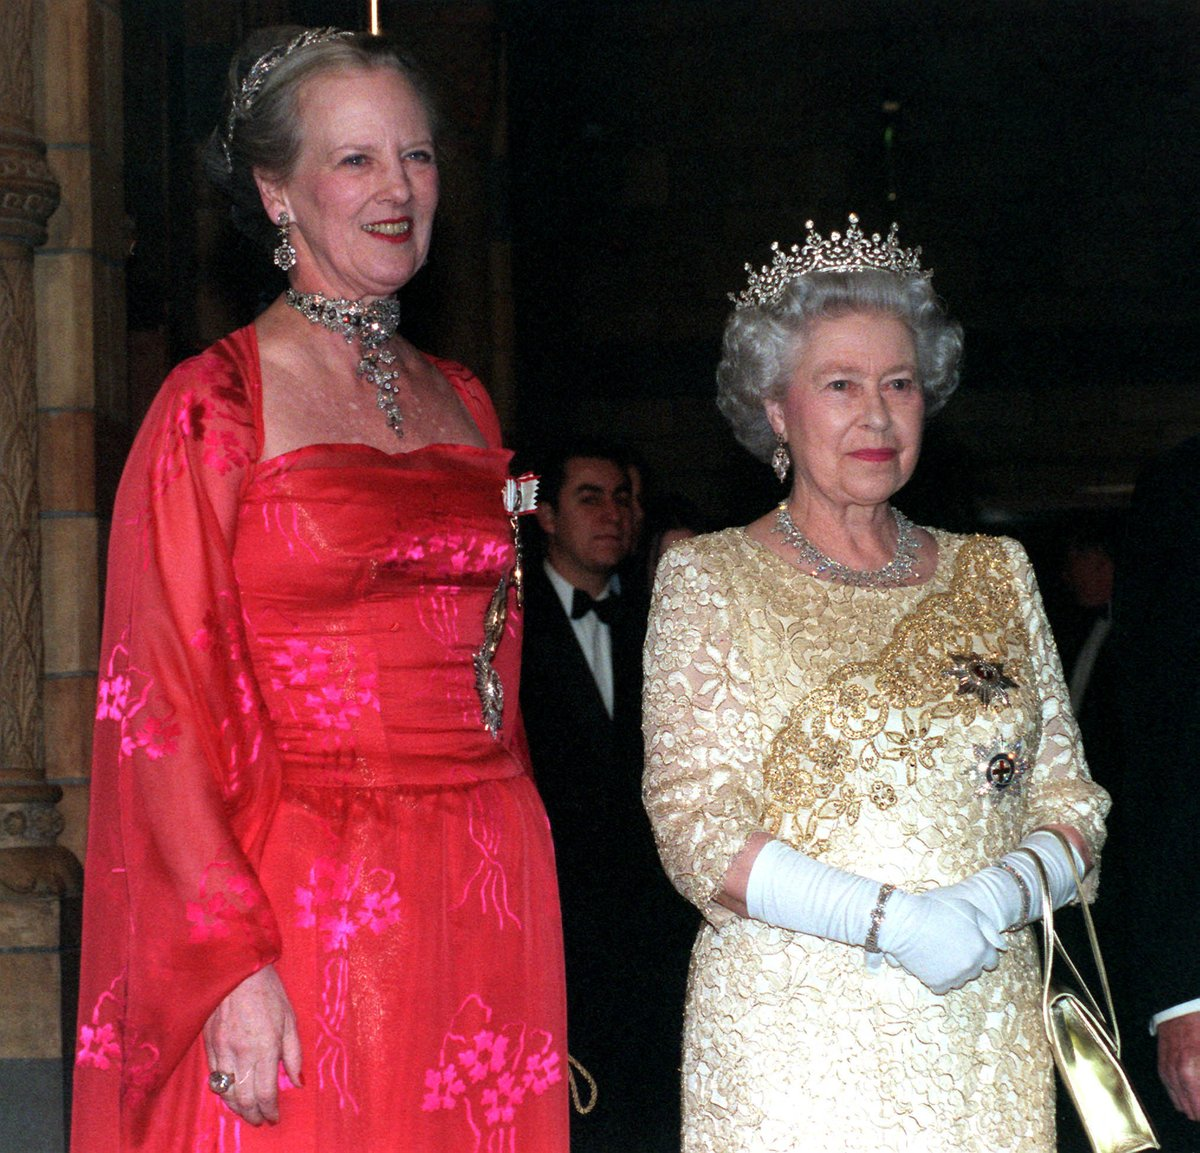 Queen Margrethe is joint Patron of the Anglo-Danish Society, alongside Her Majesty The Queen. They are pictured here together during the Danish State Visit to the UK in 2000.